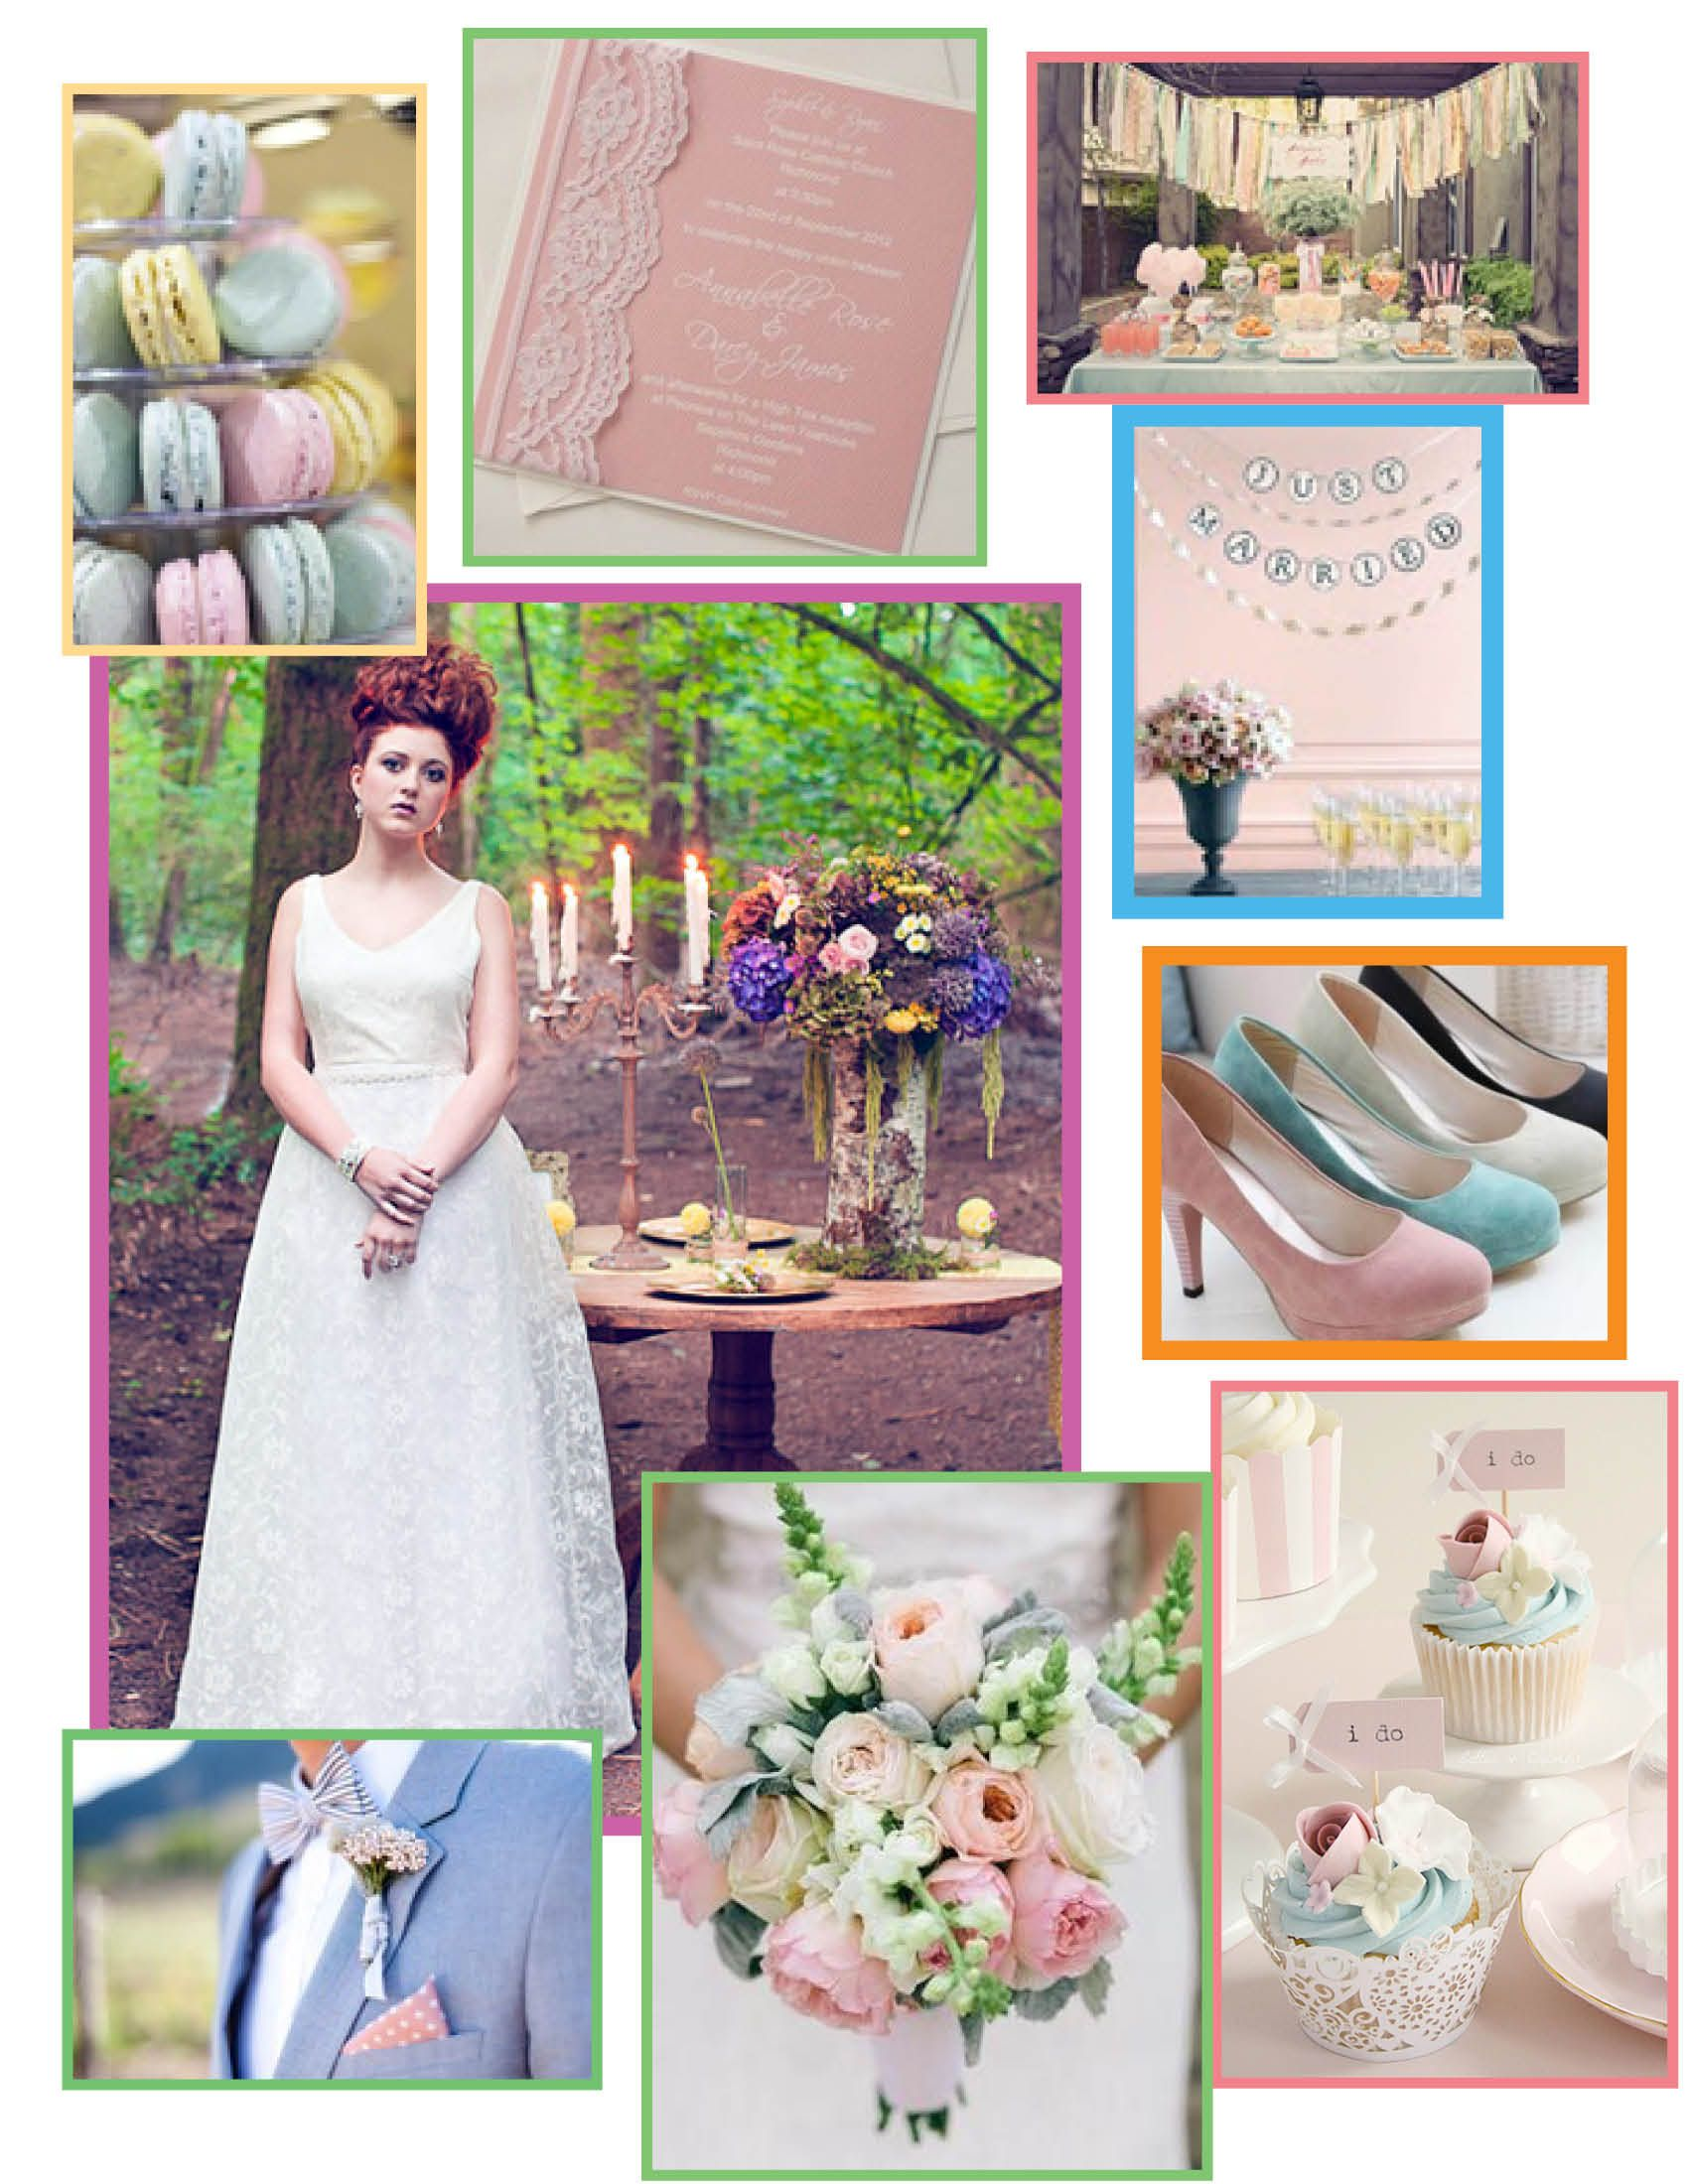 Perfect theme for a spring wedding or even Easter 2014! Pastels are a perfect whimsical setting your special day!  http://www.puremagnolia.ca/wp-content/uploads/2013/03/Pastel-Weddings1.jpg